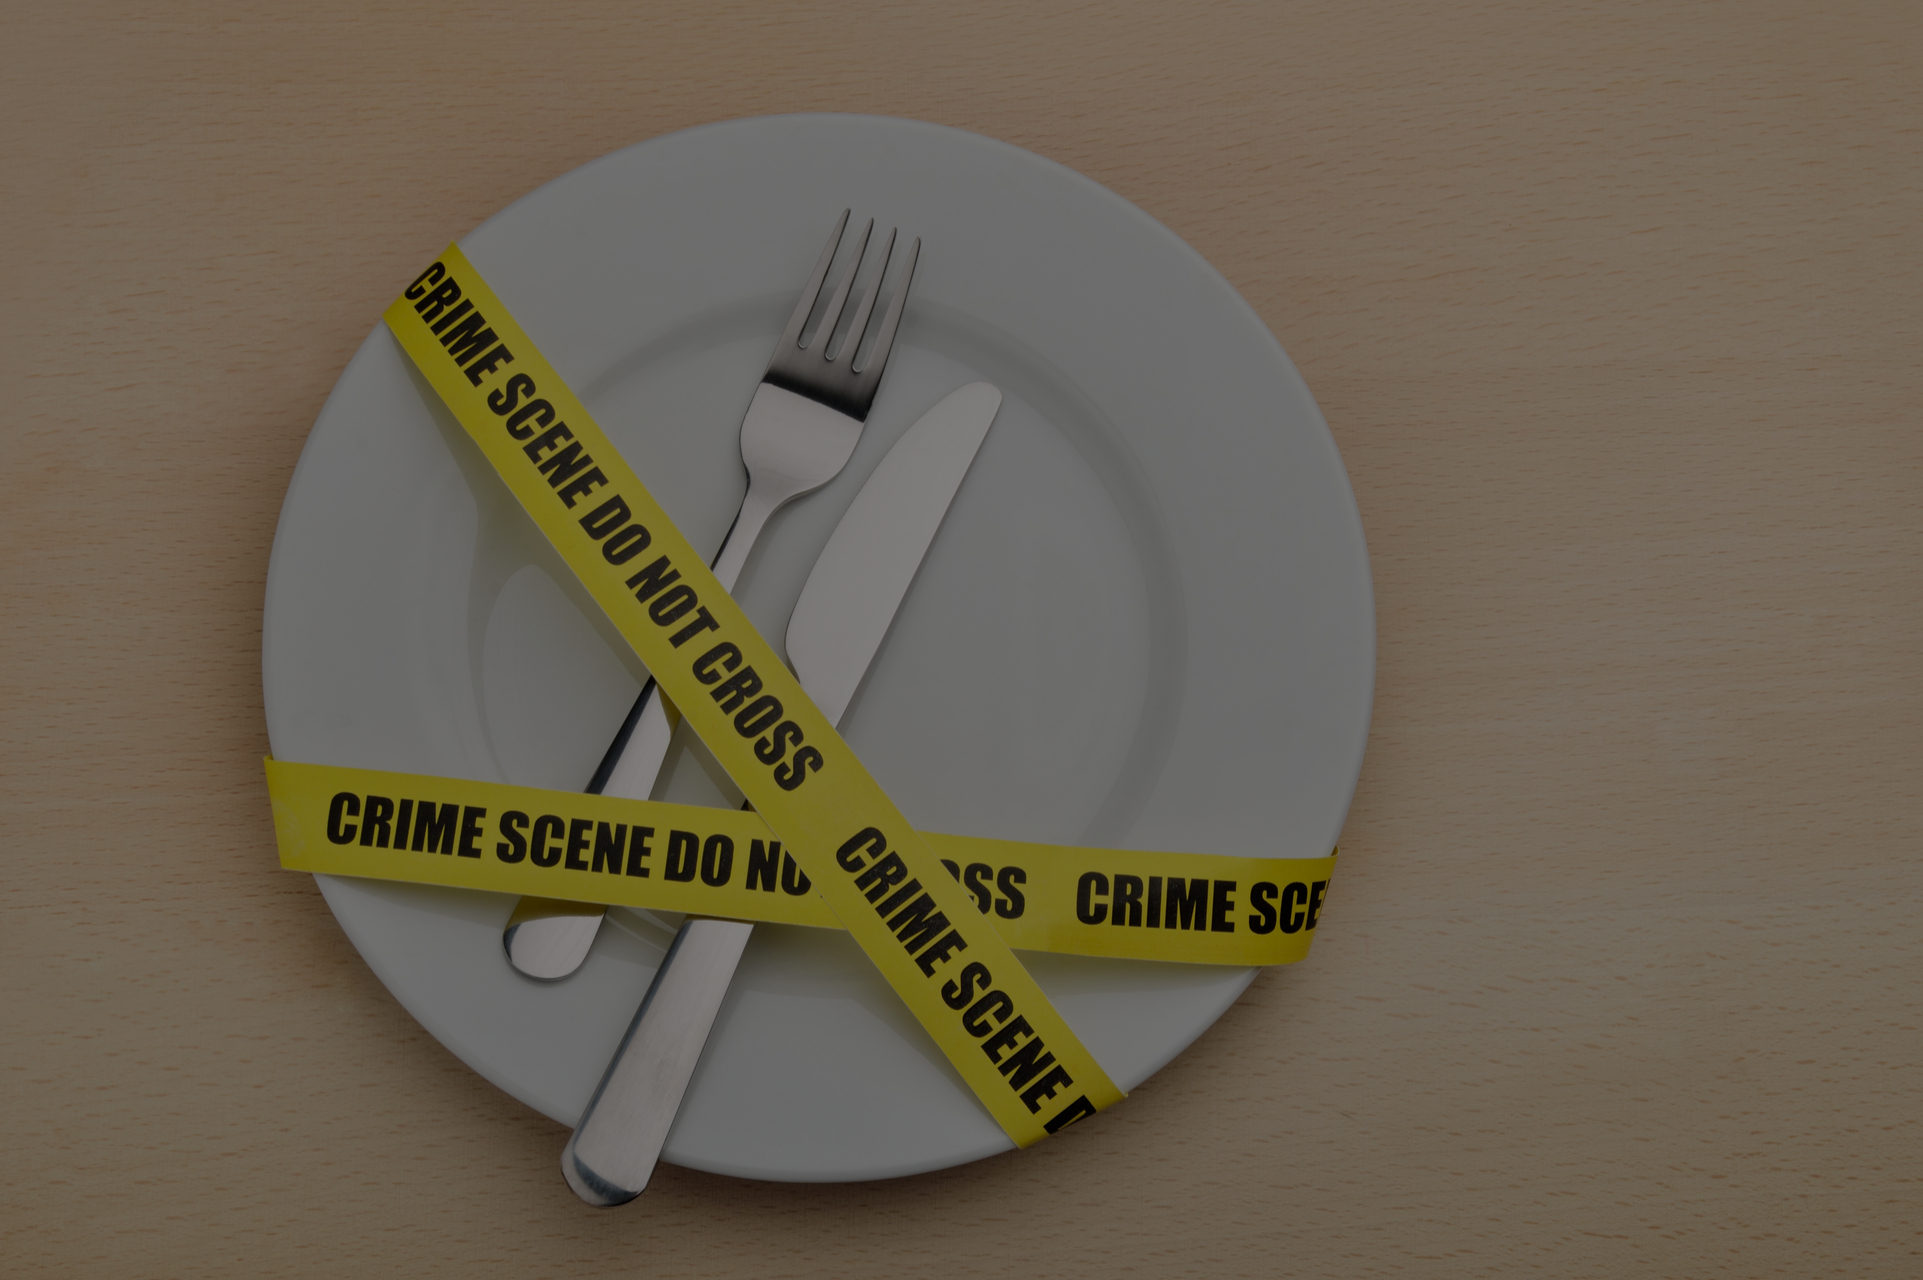 Food Crime - How Reputable Are Your Suppliers?